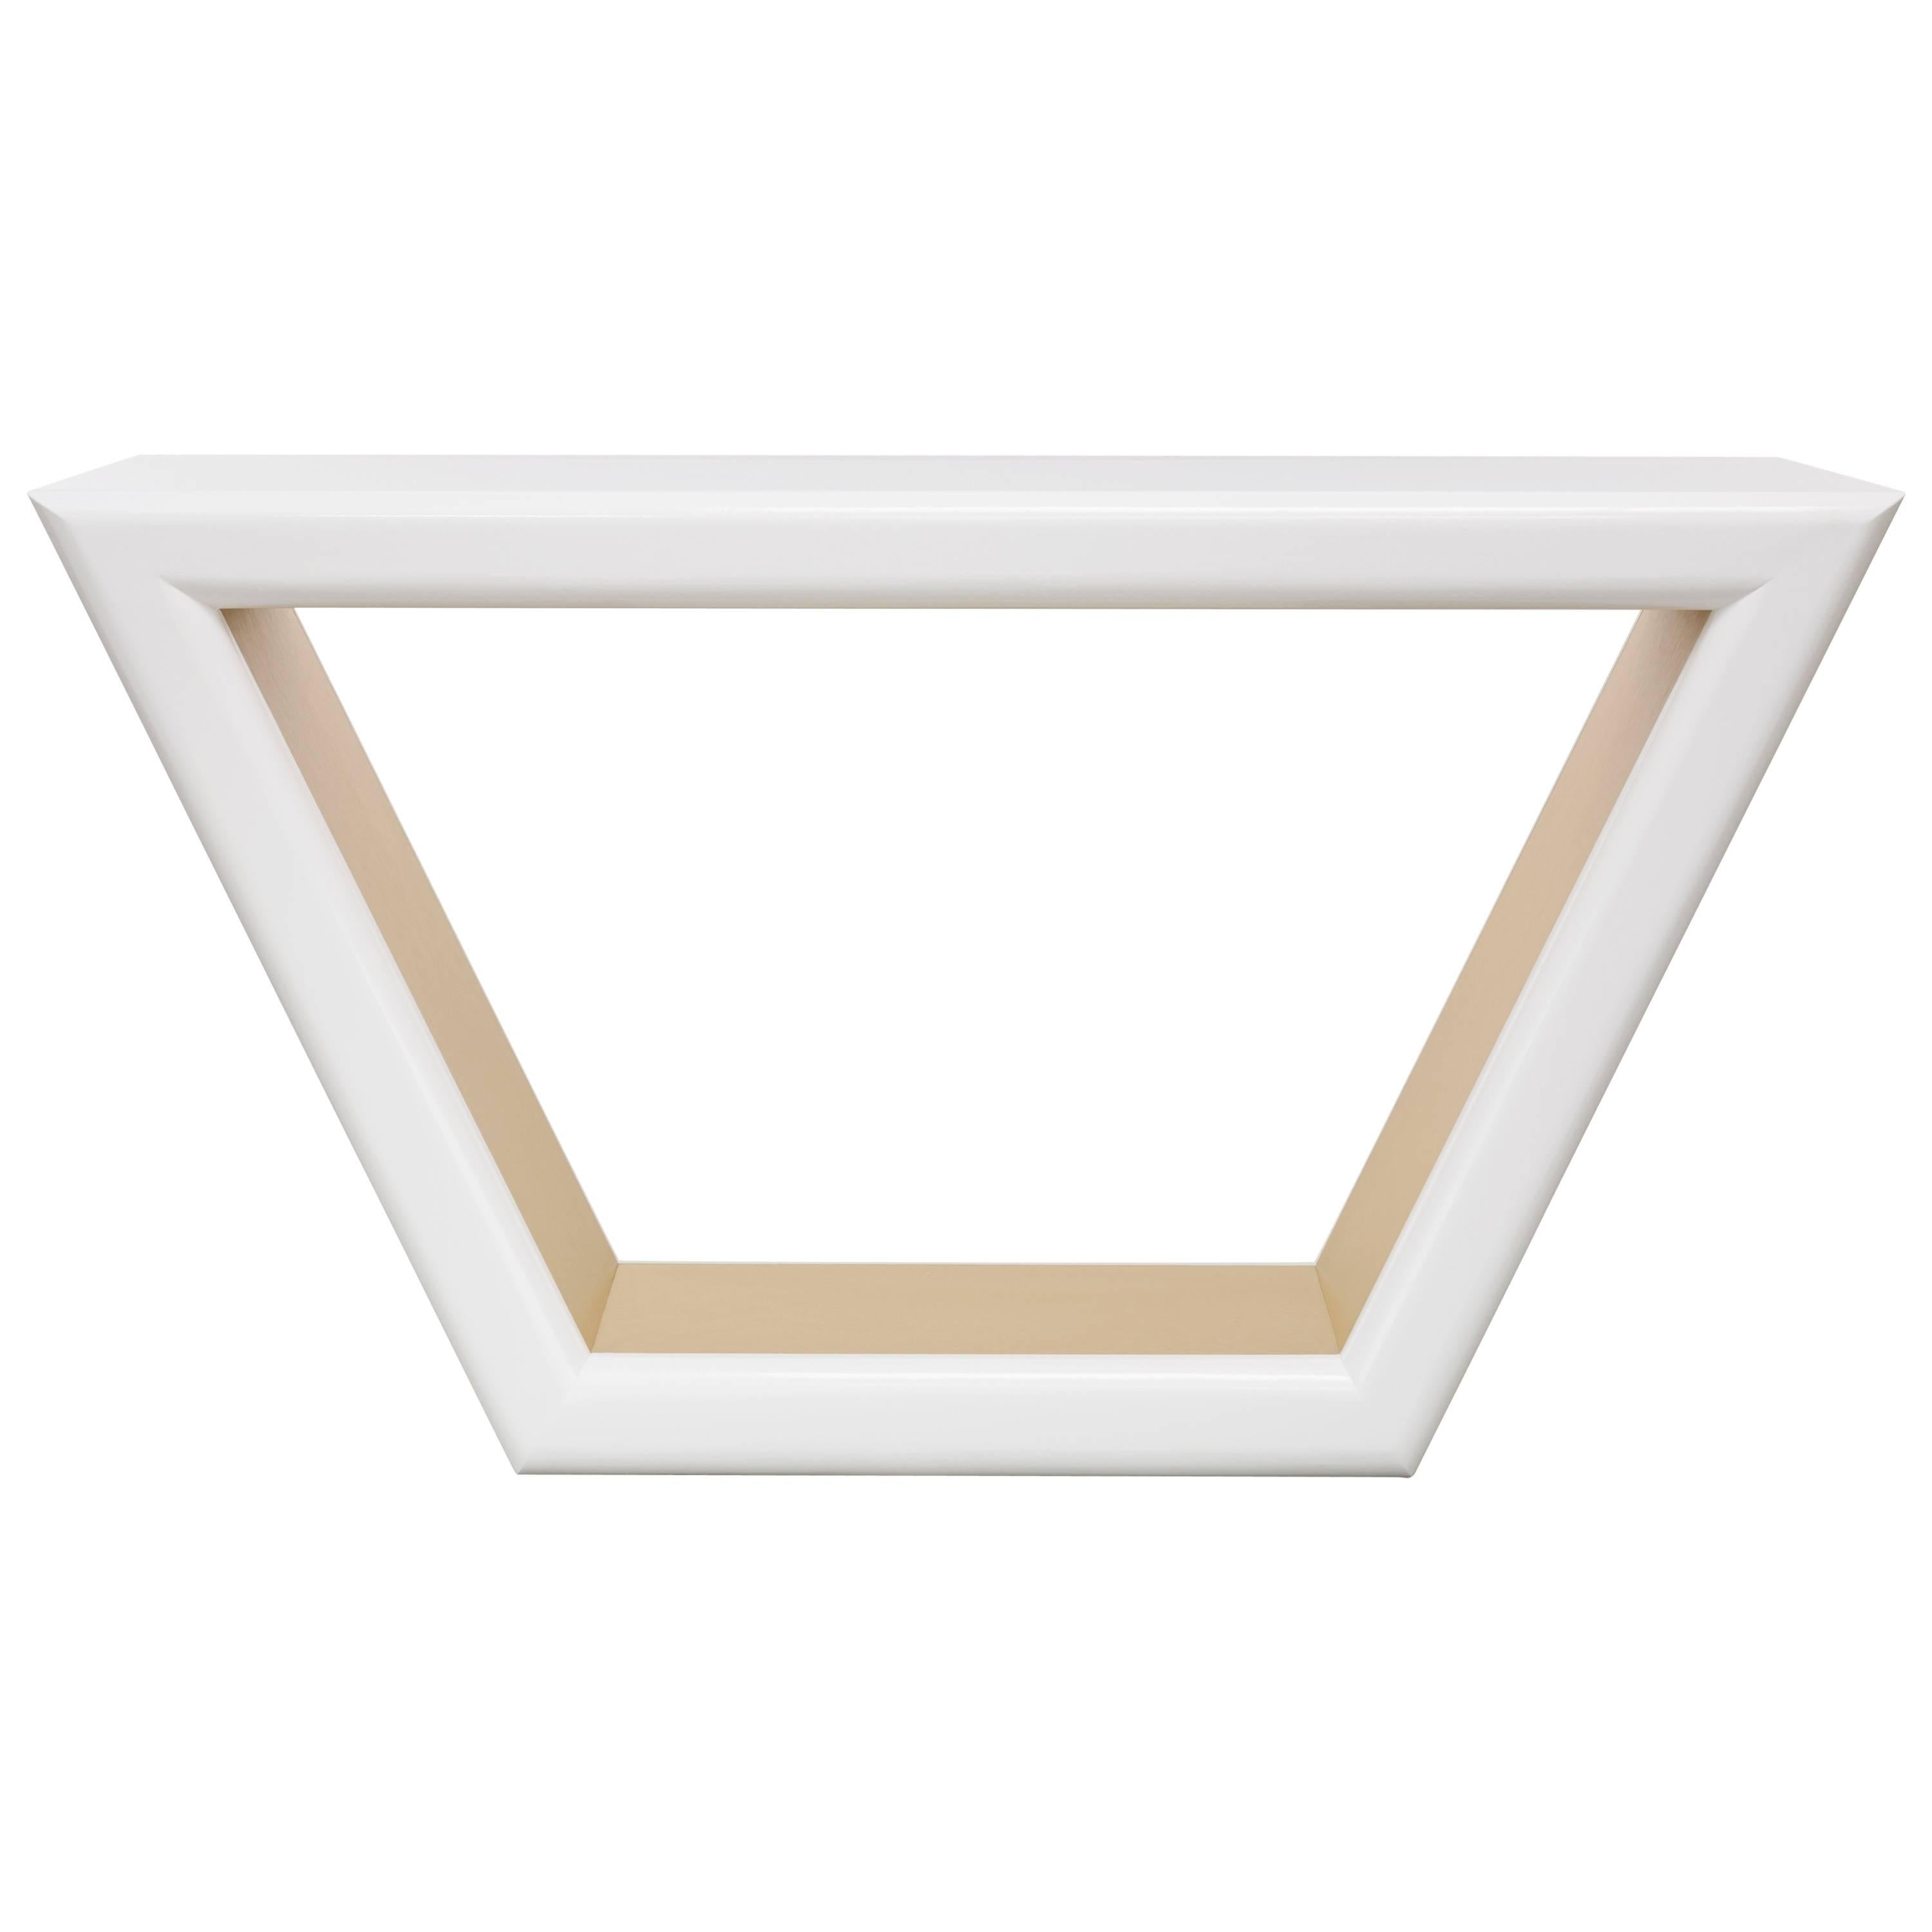 JOLIE CONSOLE TABLE - Modern  White Lacquer Console and Metal Inlay